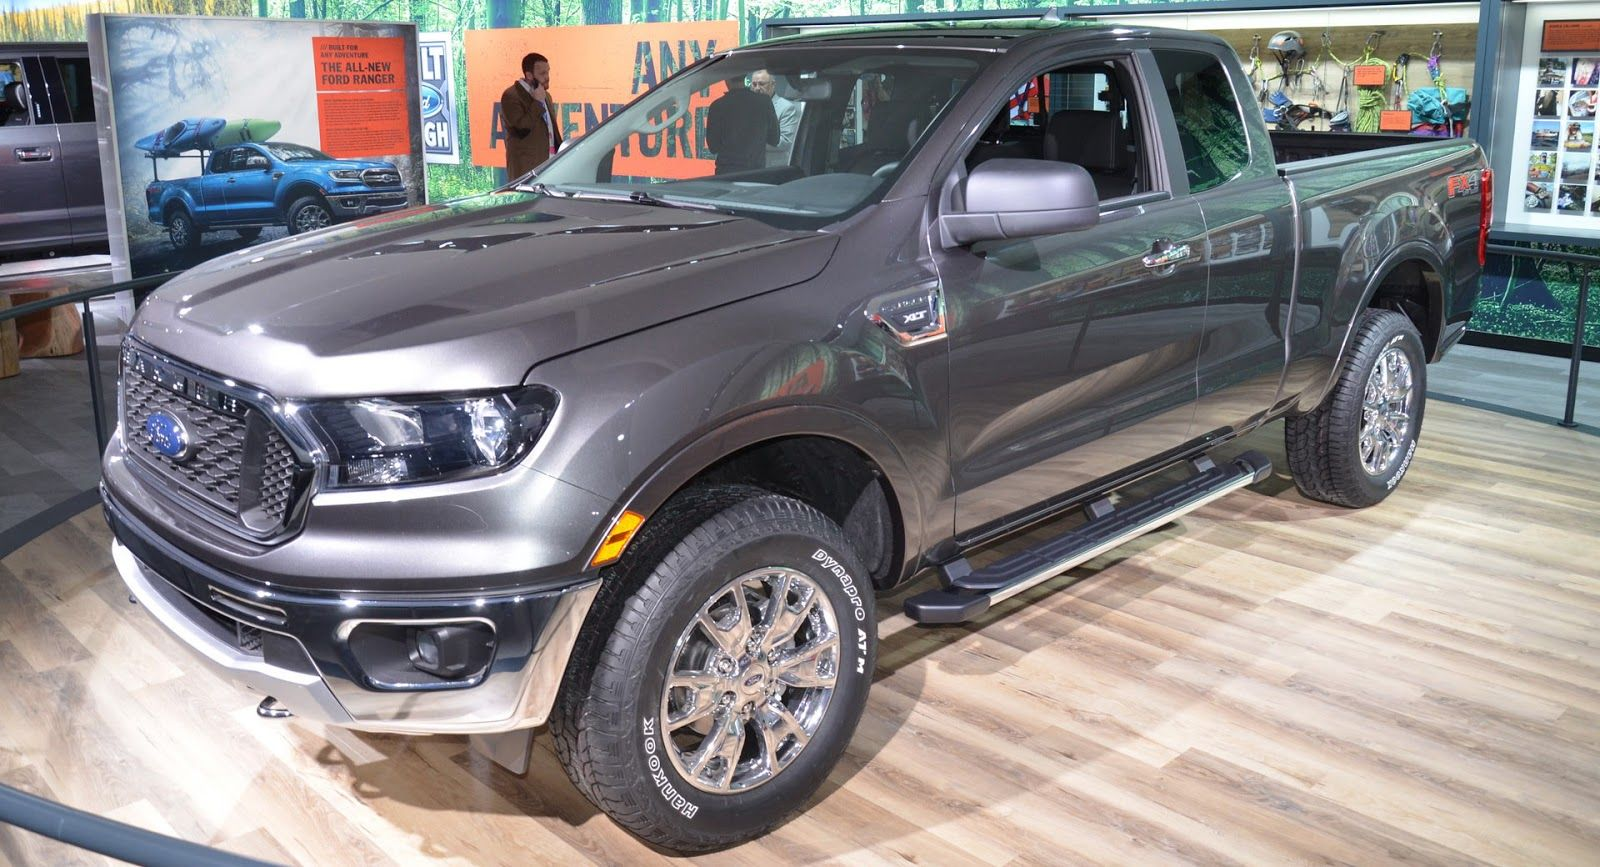 2019 Ford Ranger Wants To Become America S Default Midsize Truck Ford Ranger 2019 Ford Ranger 4x4 Ford Ranger